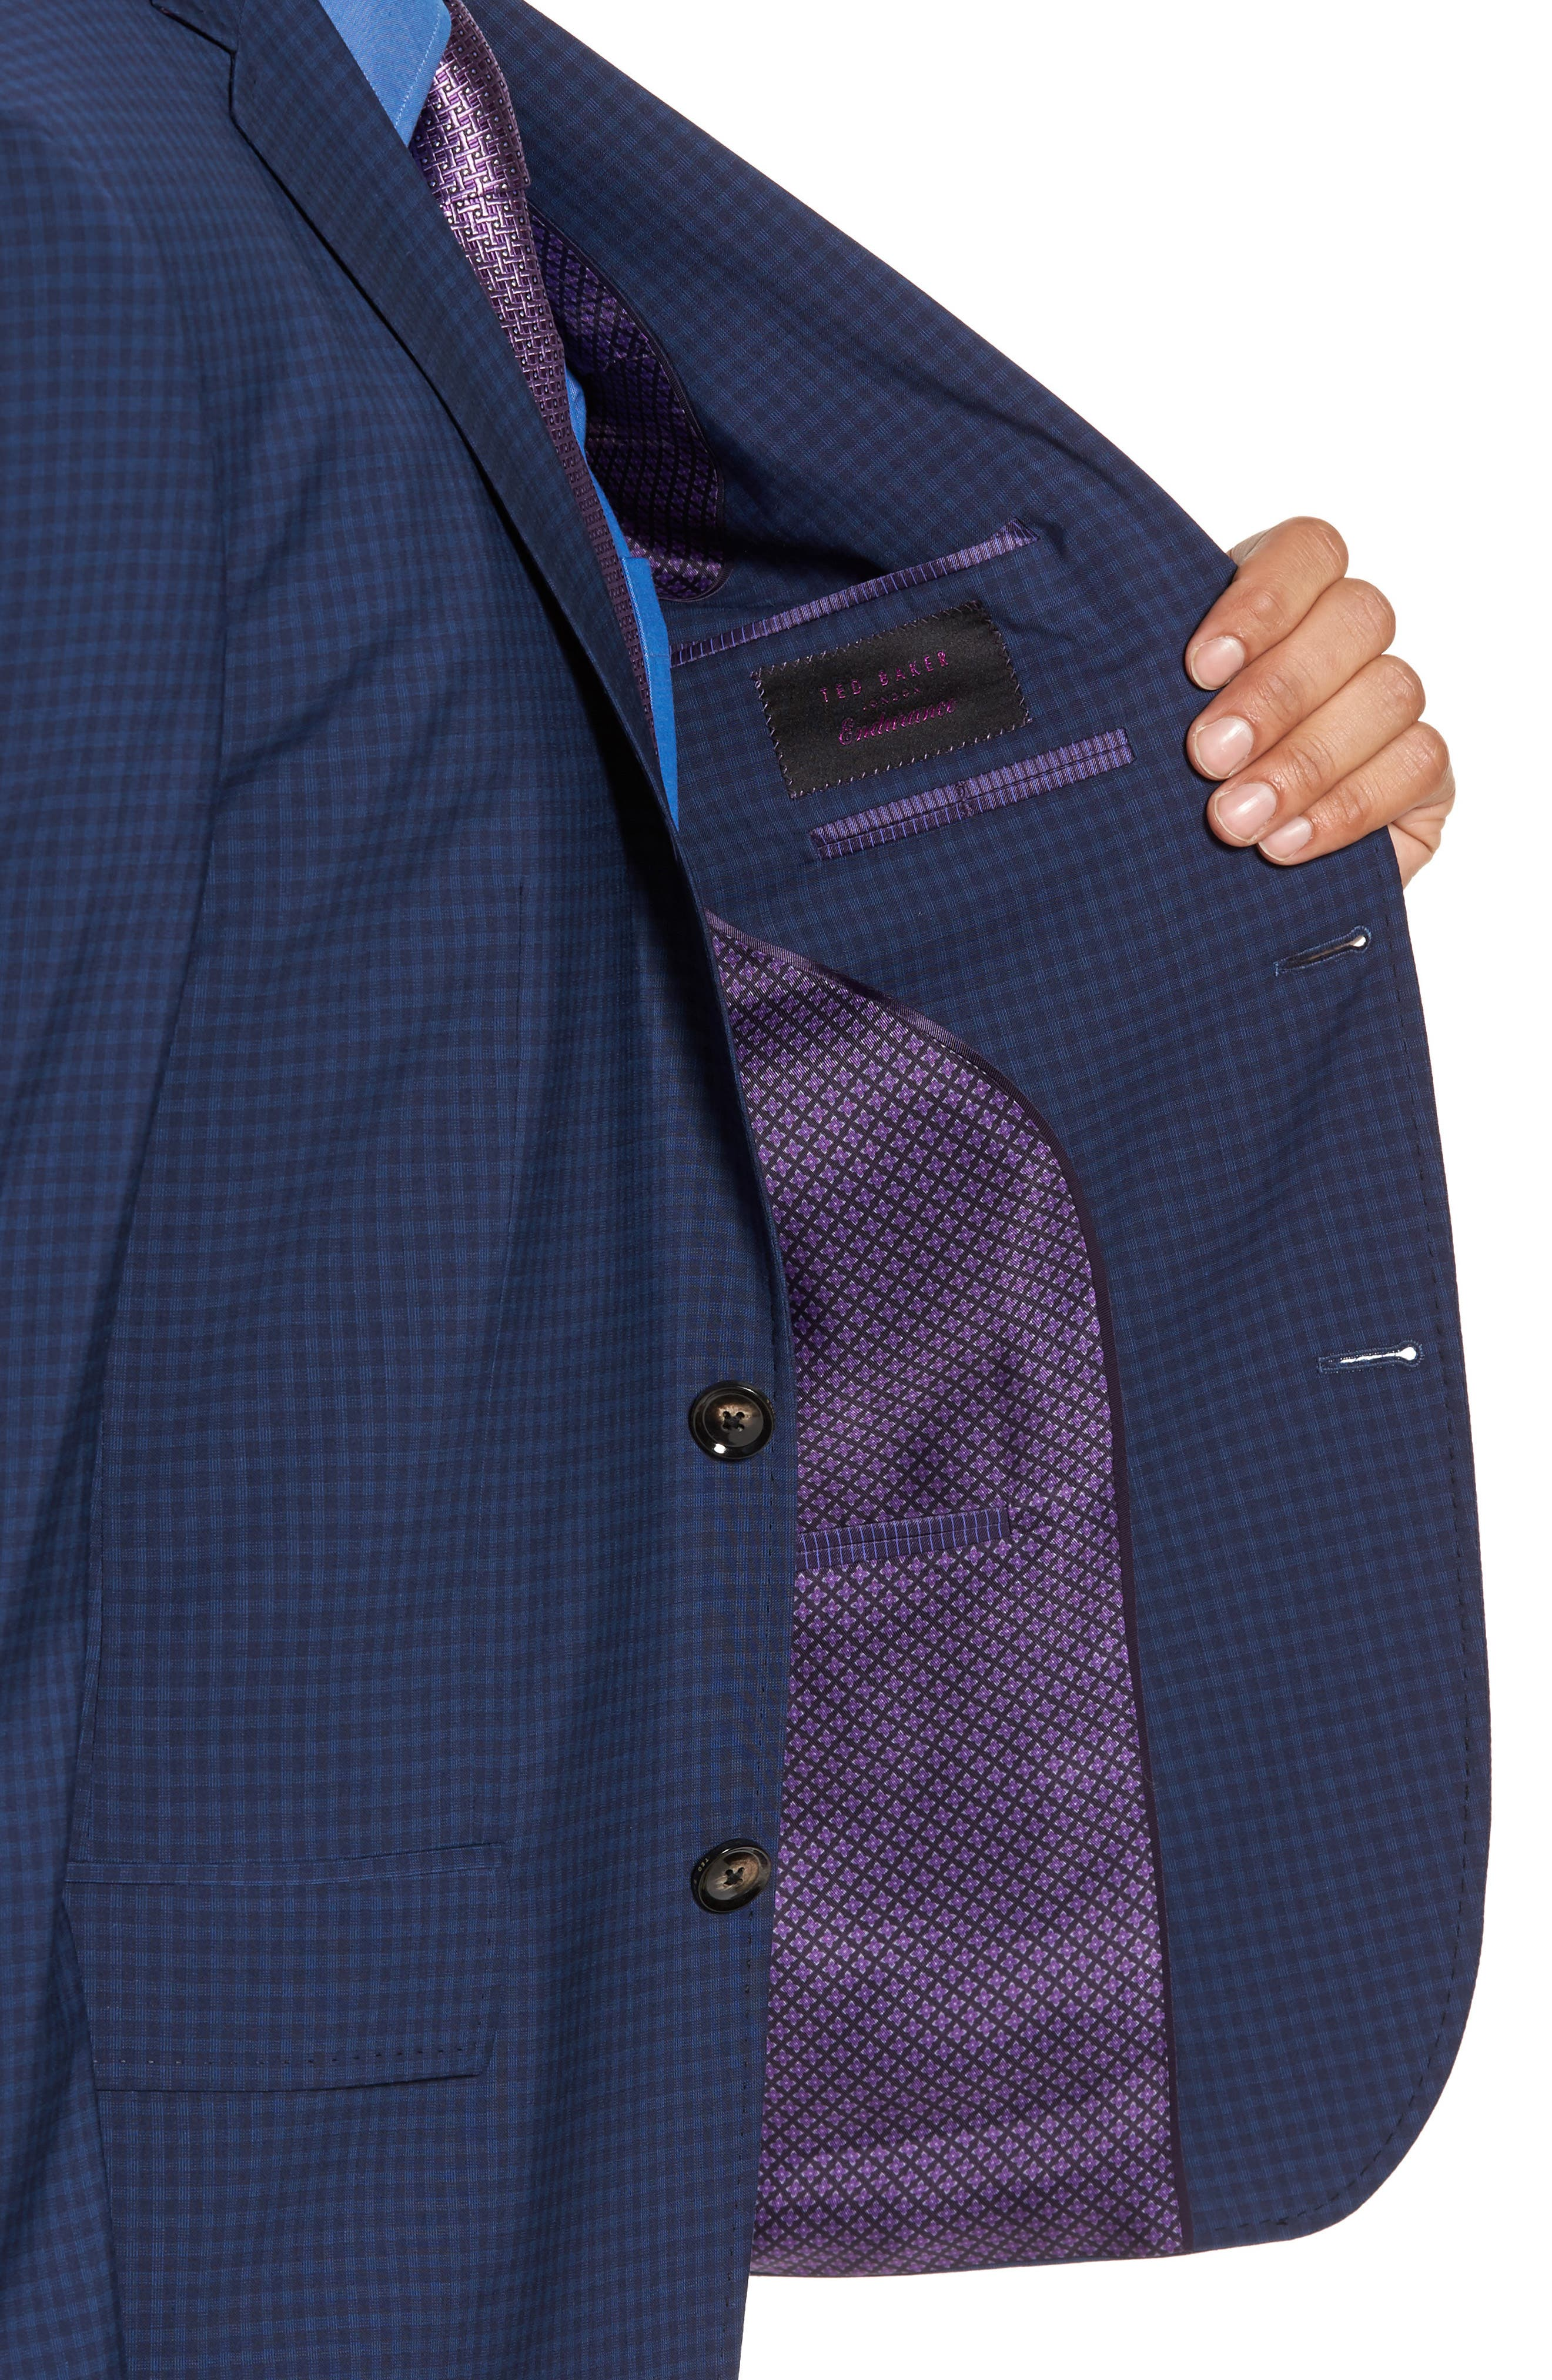 Jay Trim Fit Stretch Wool Suit,                             Alternate thumbnail 4, color,                             Blue